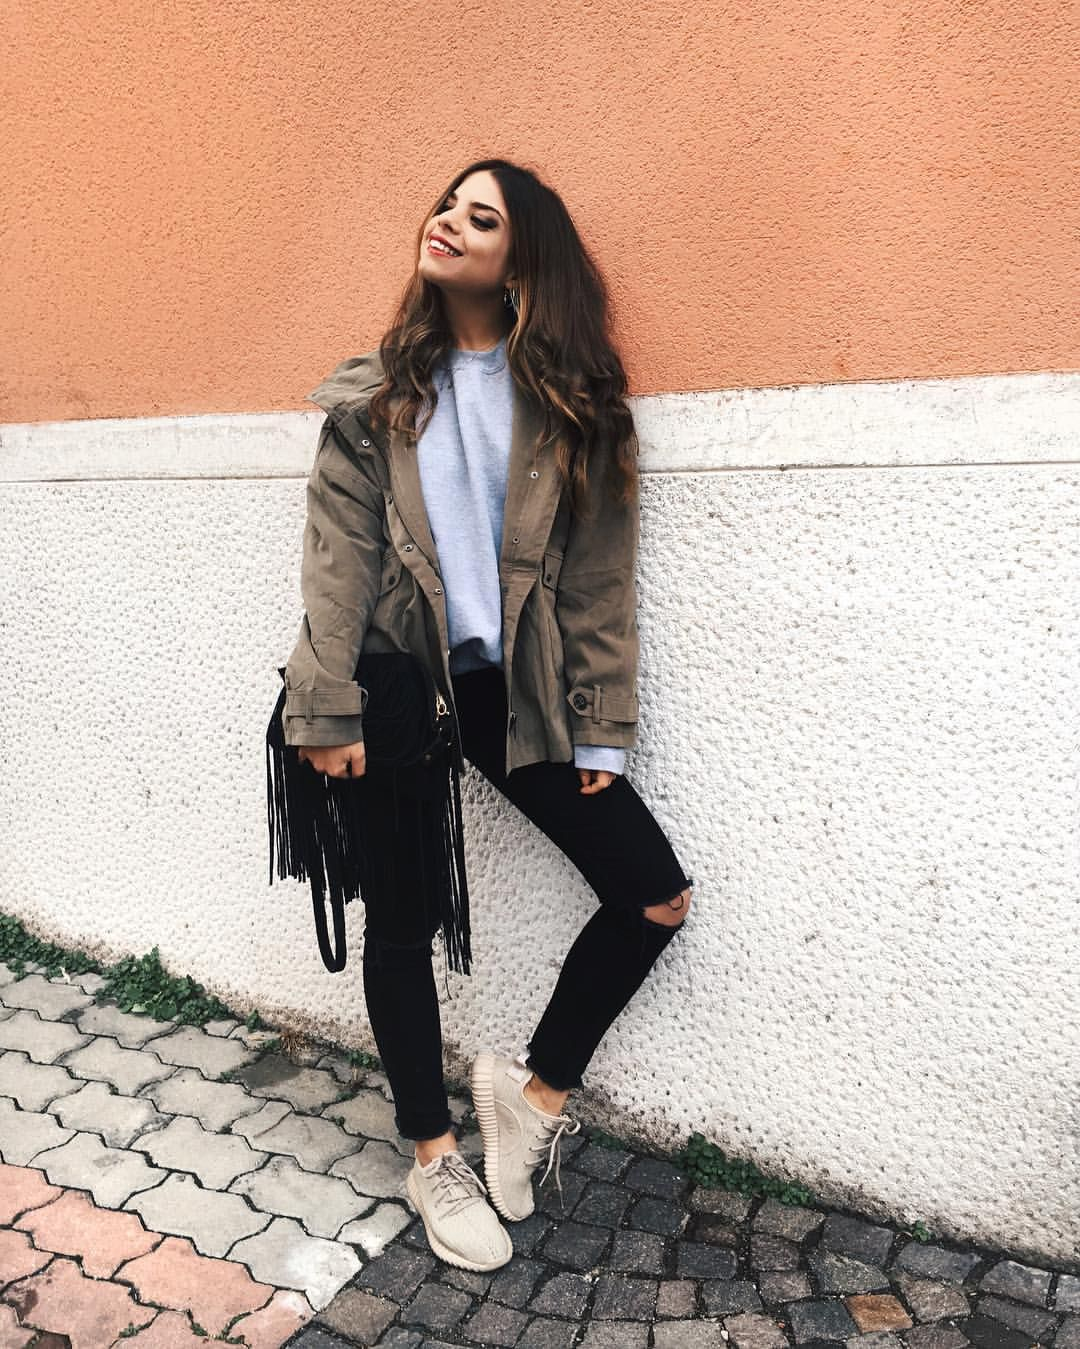 Francesca Cinà ❣ su Instagram  myway    comfy clothes✌️Double agent Usa  jacket - yeezy boost 350 from  par5milano b10fcf228b